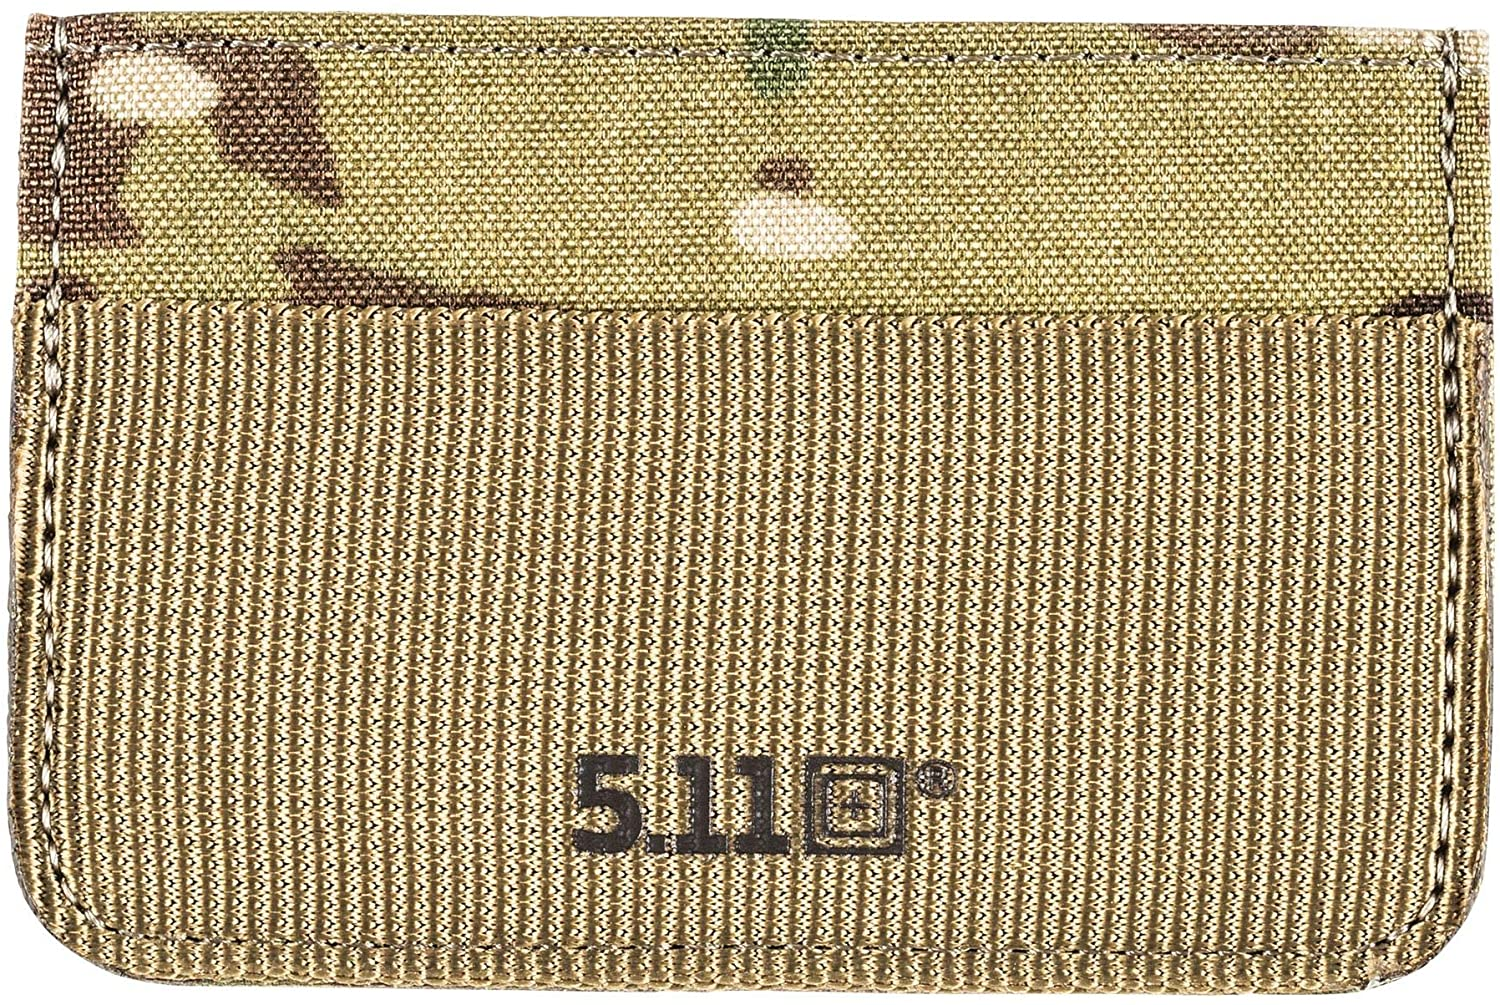 5.11 Tactical Camo Tamper-Resistant Card Wallet, 11 Cards, Style 56548